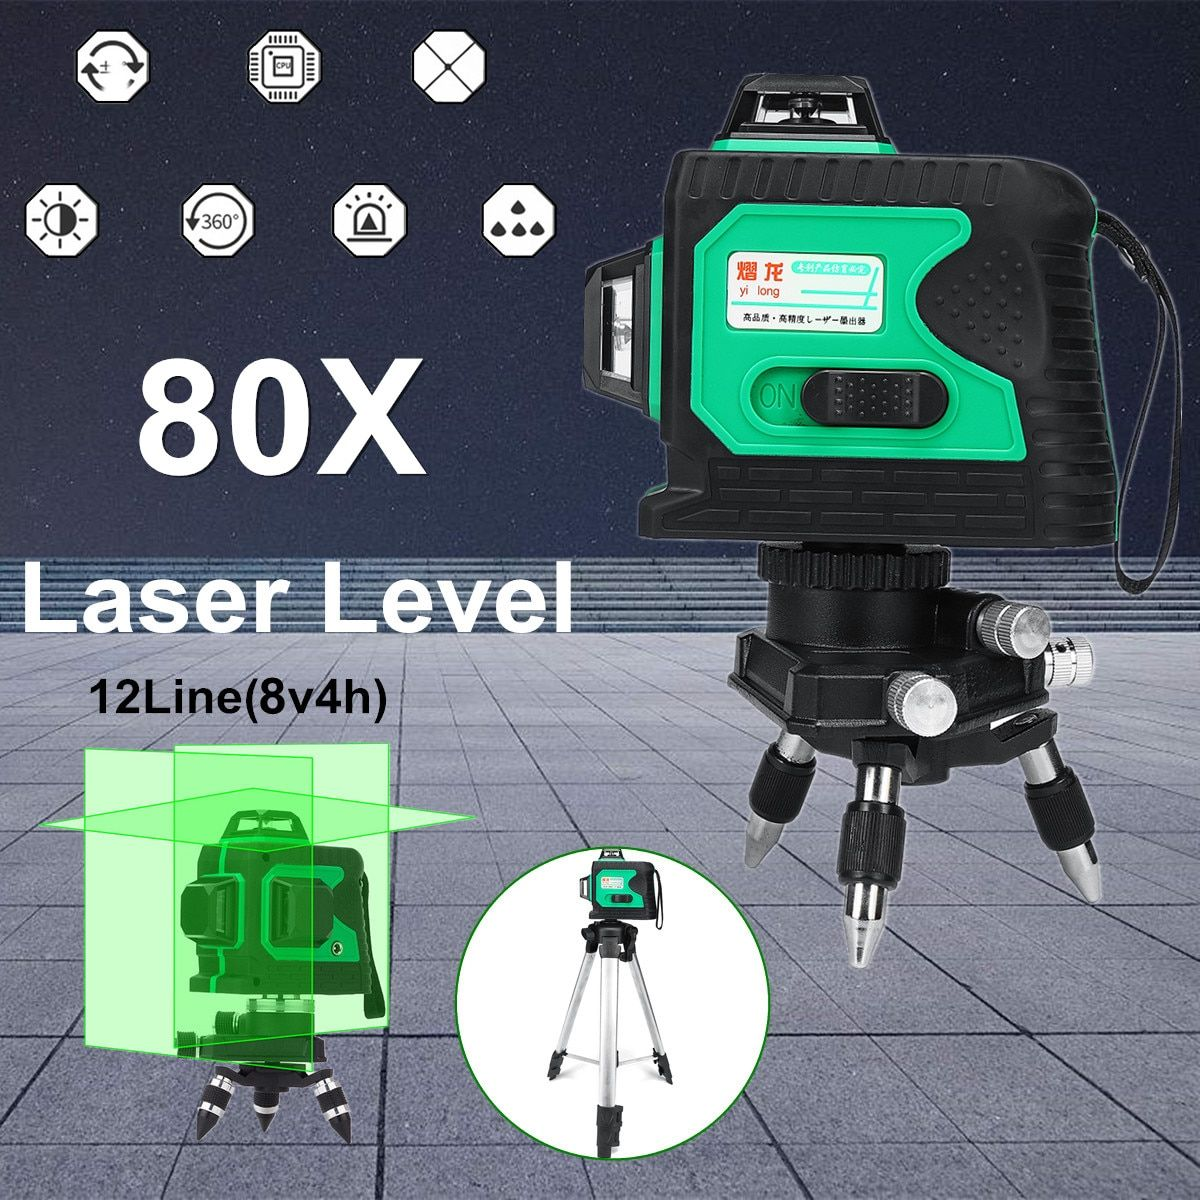 3D 12 Line 360 Degree Laser Waterproof Auto Self Leveling with Tripod Vertical Horizontal Level Cross GREEN Plumb-point Function